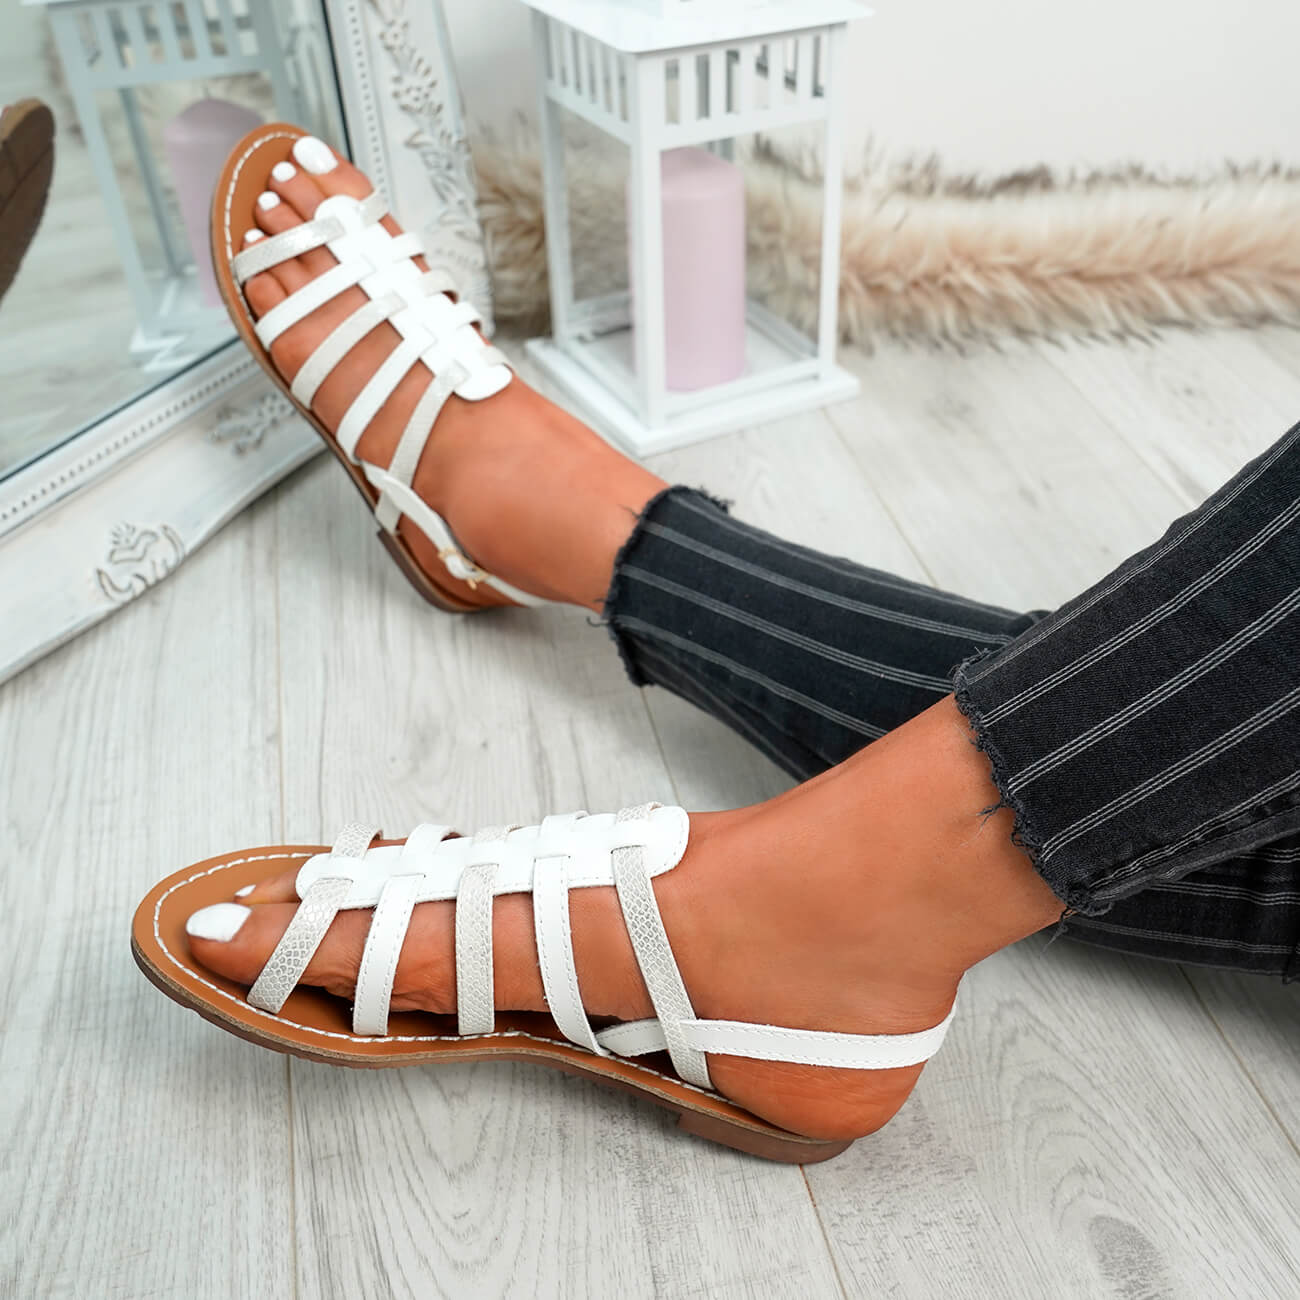 WOMENS-LADIES-BUCKLE-STRAP-FLAT-SUMMER-SANDALS-CASUAL-HOLIDAY-COMFY-SHOES-SIZE thumbnail 33